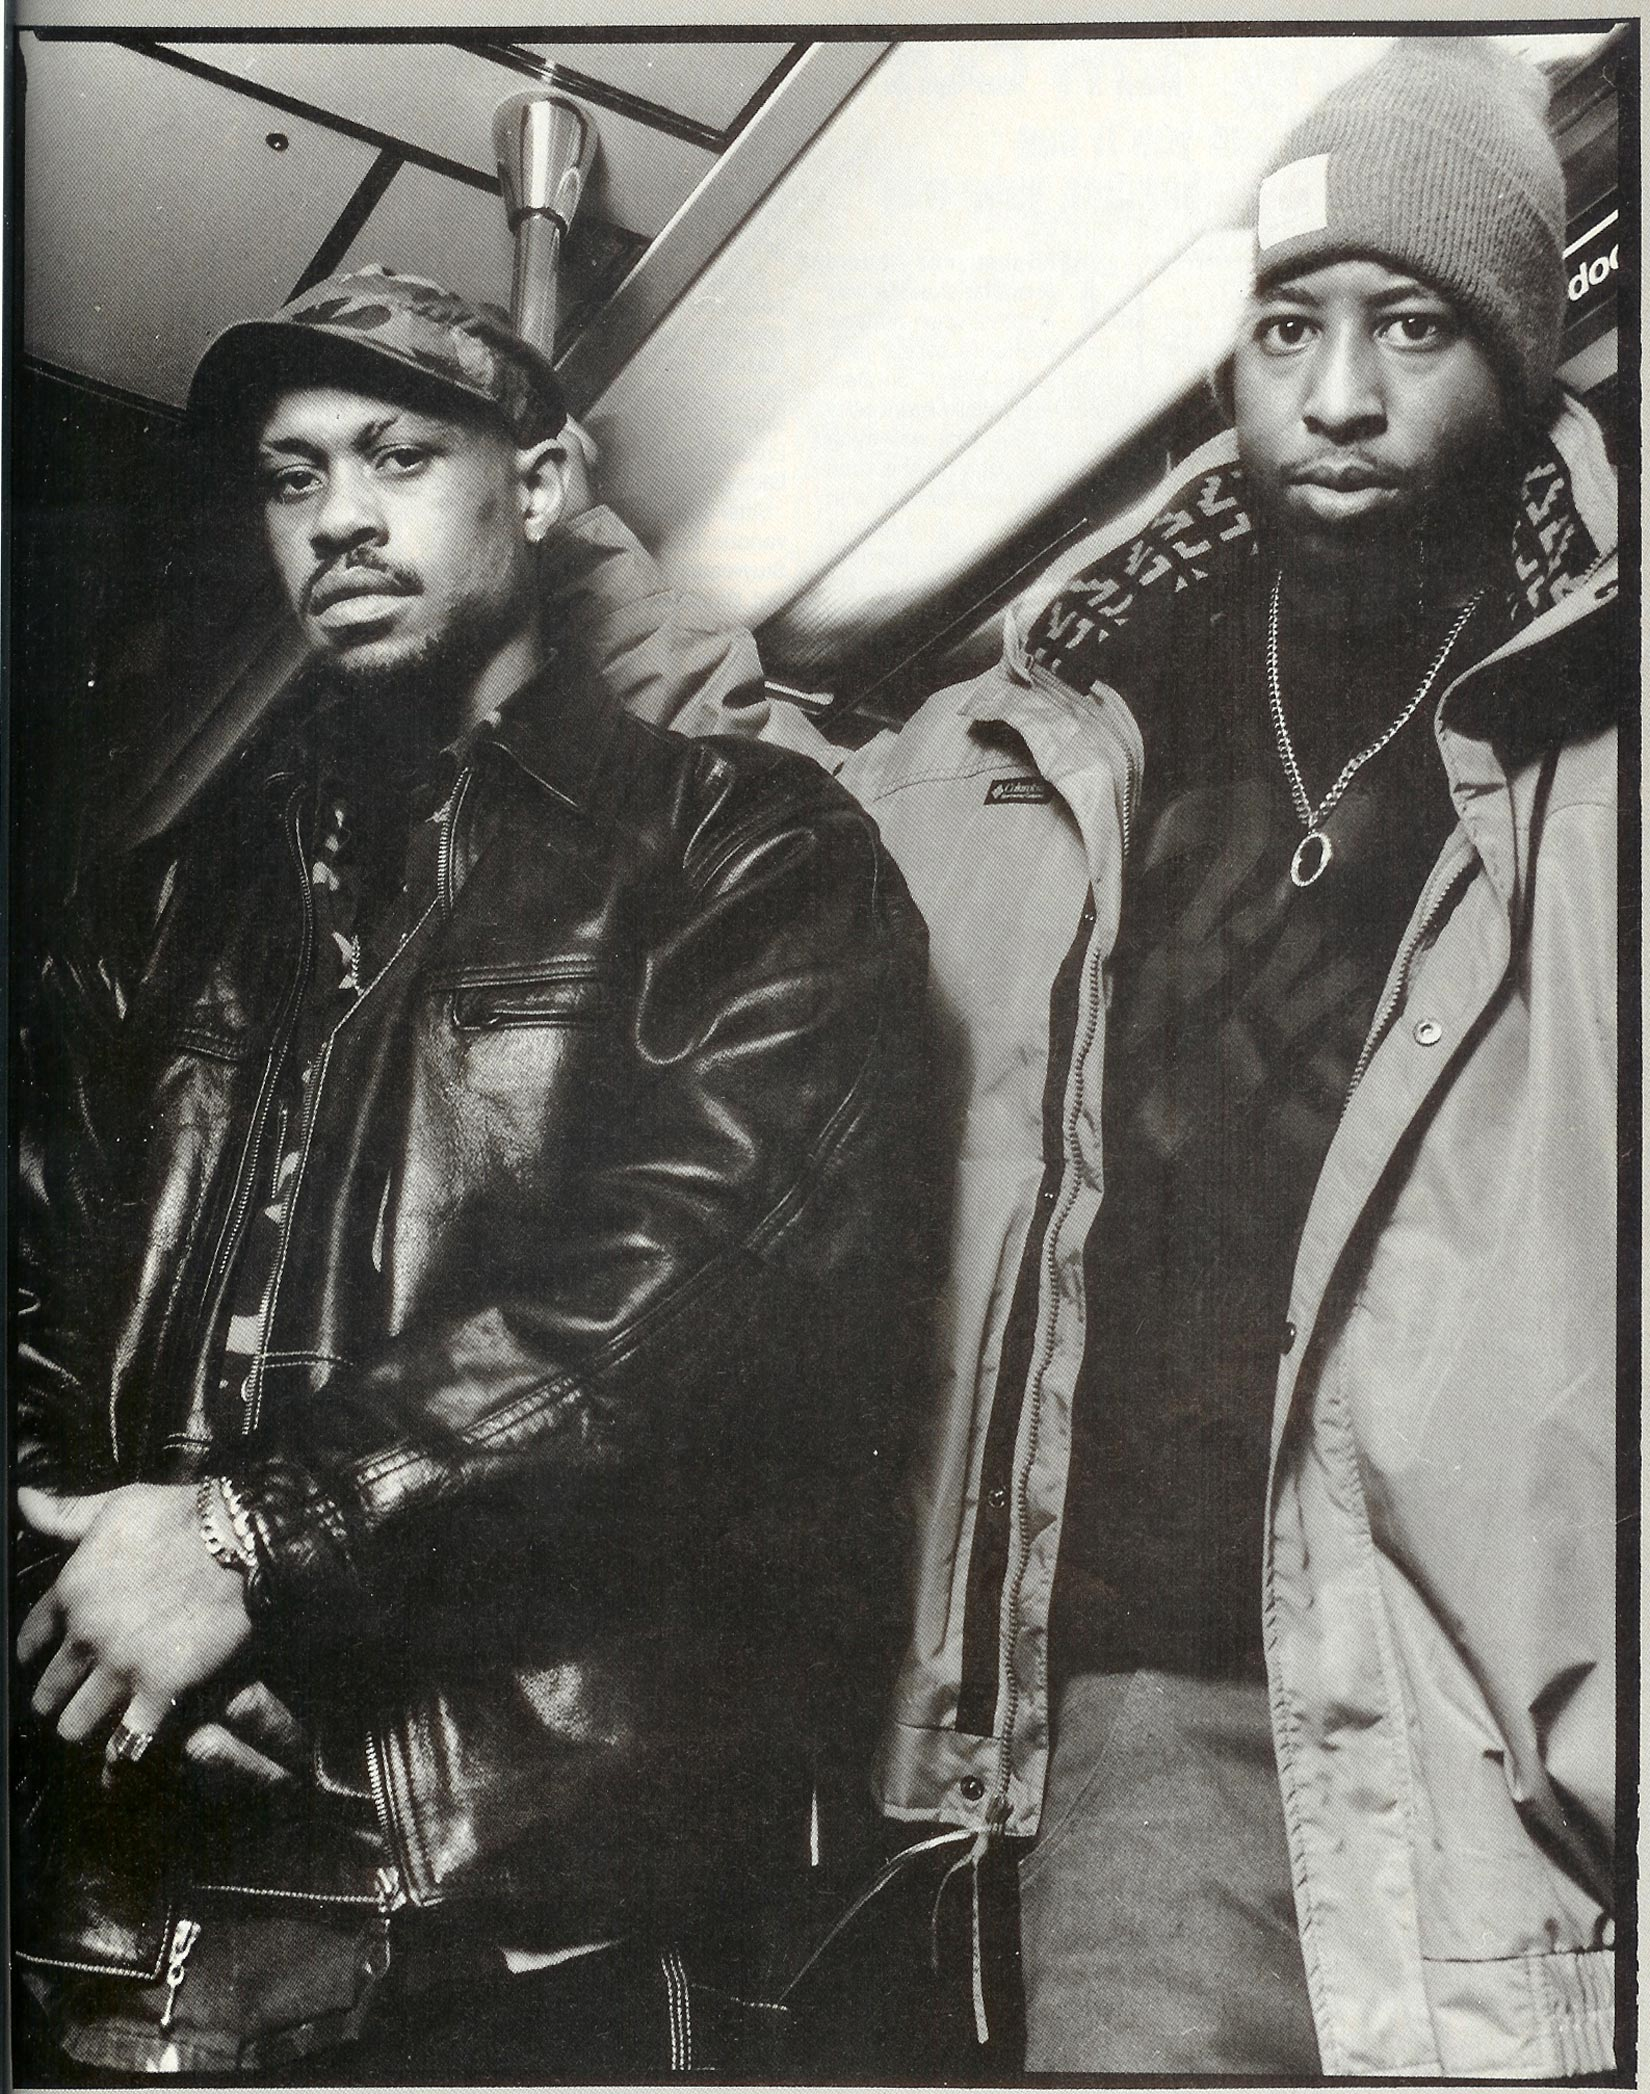 Gang Starr (If I Haven't)